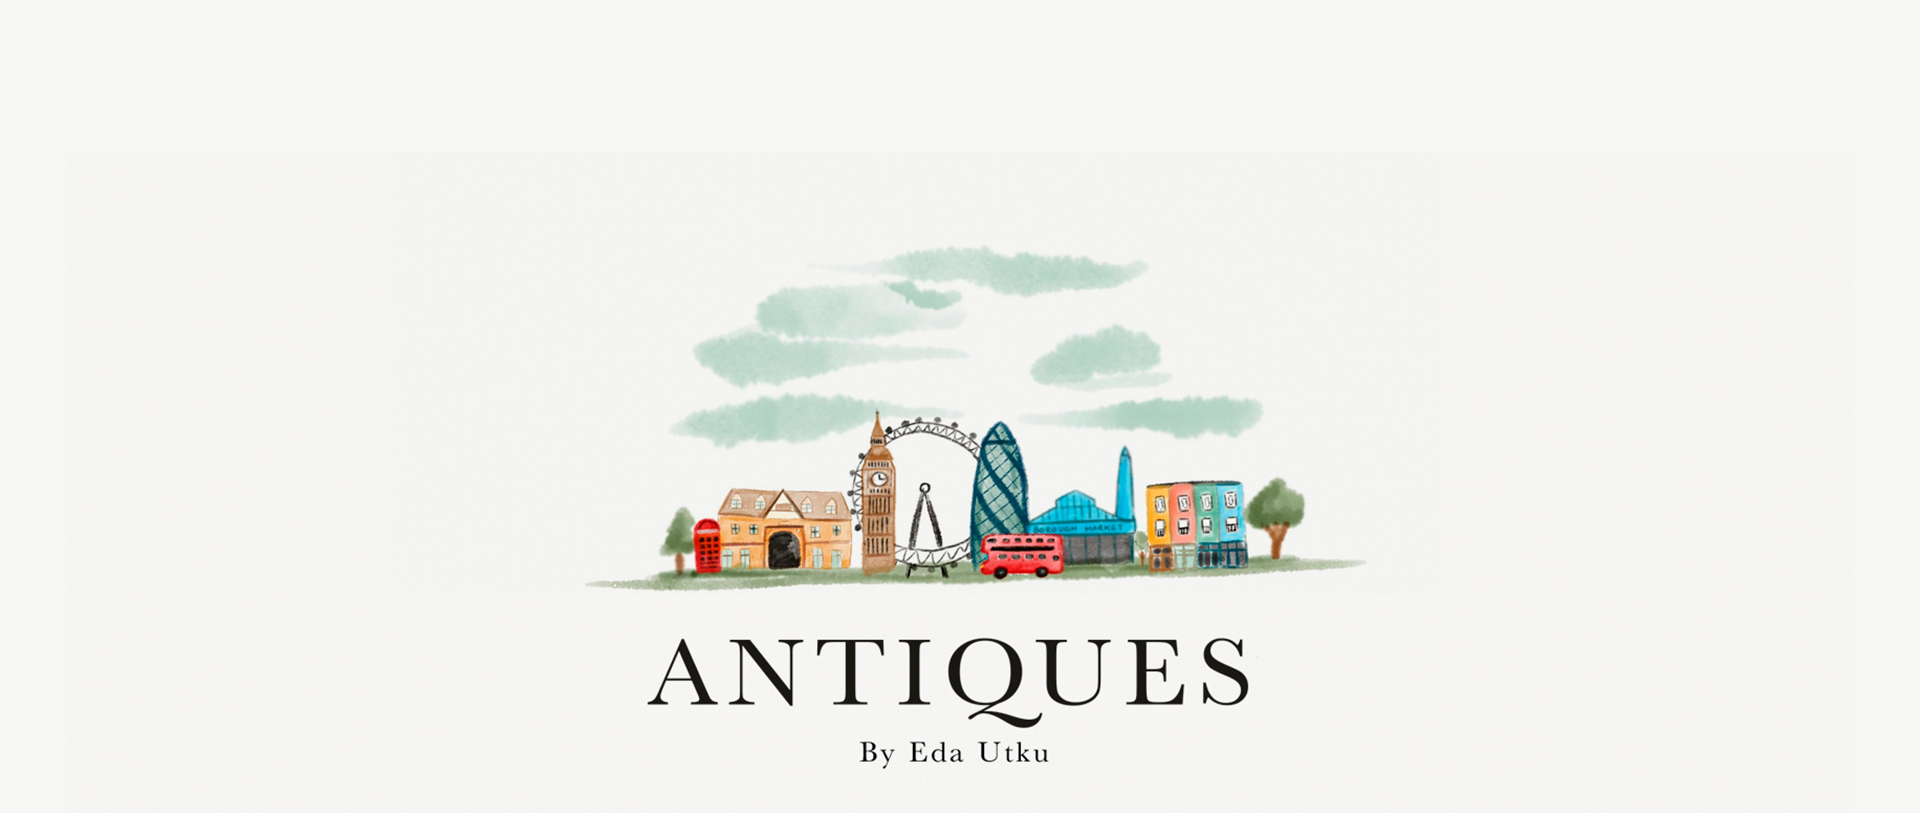 Antique Sandart By Eda